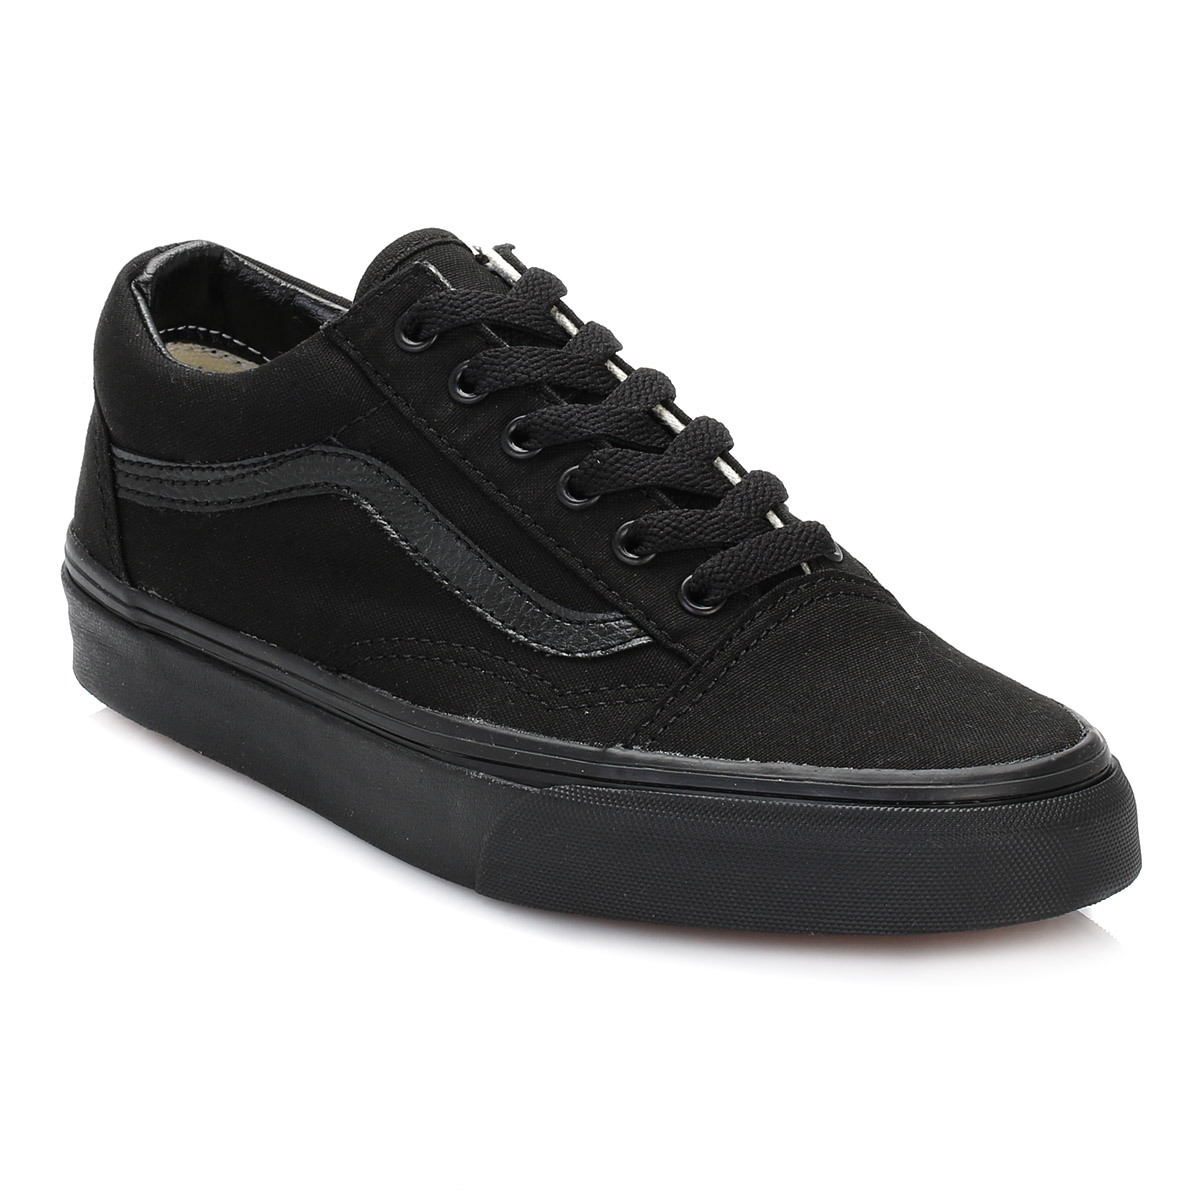 vans mens womens trainers canvas lace up old school black casual shoes vd3hbka ebay. Black Bedroom Furniture Sets. Home Design Ideas